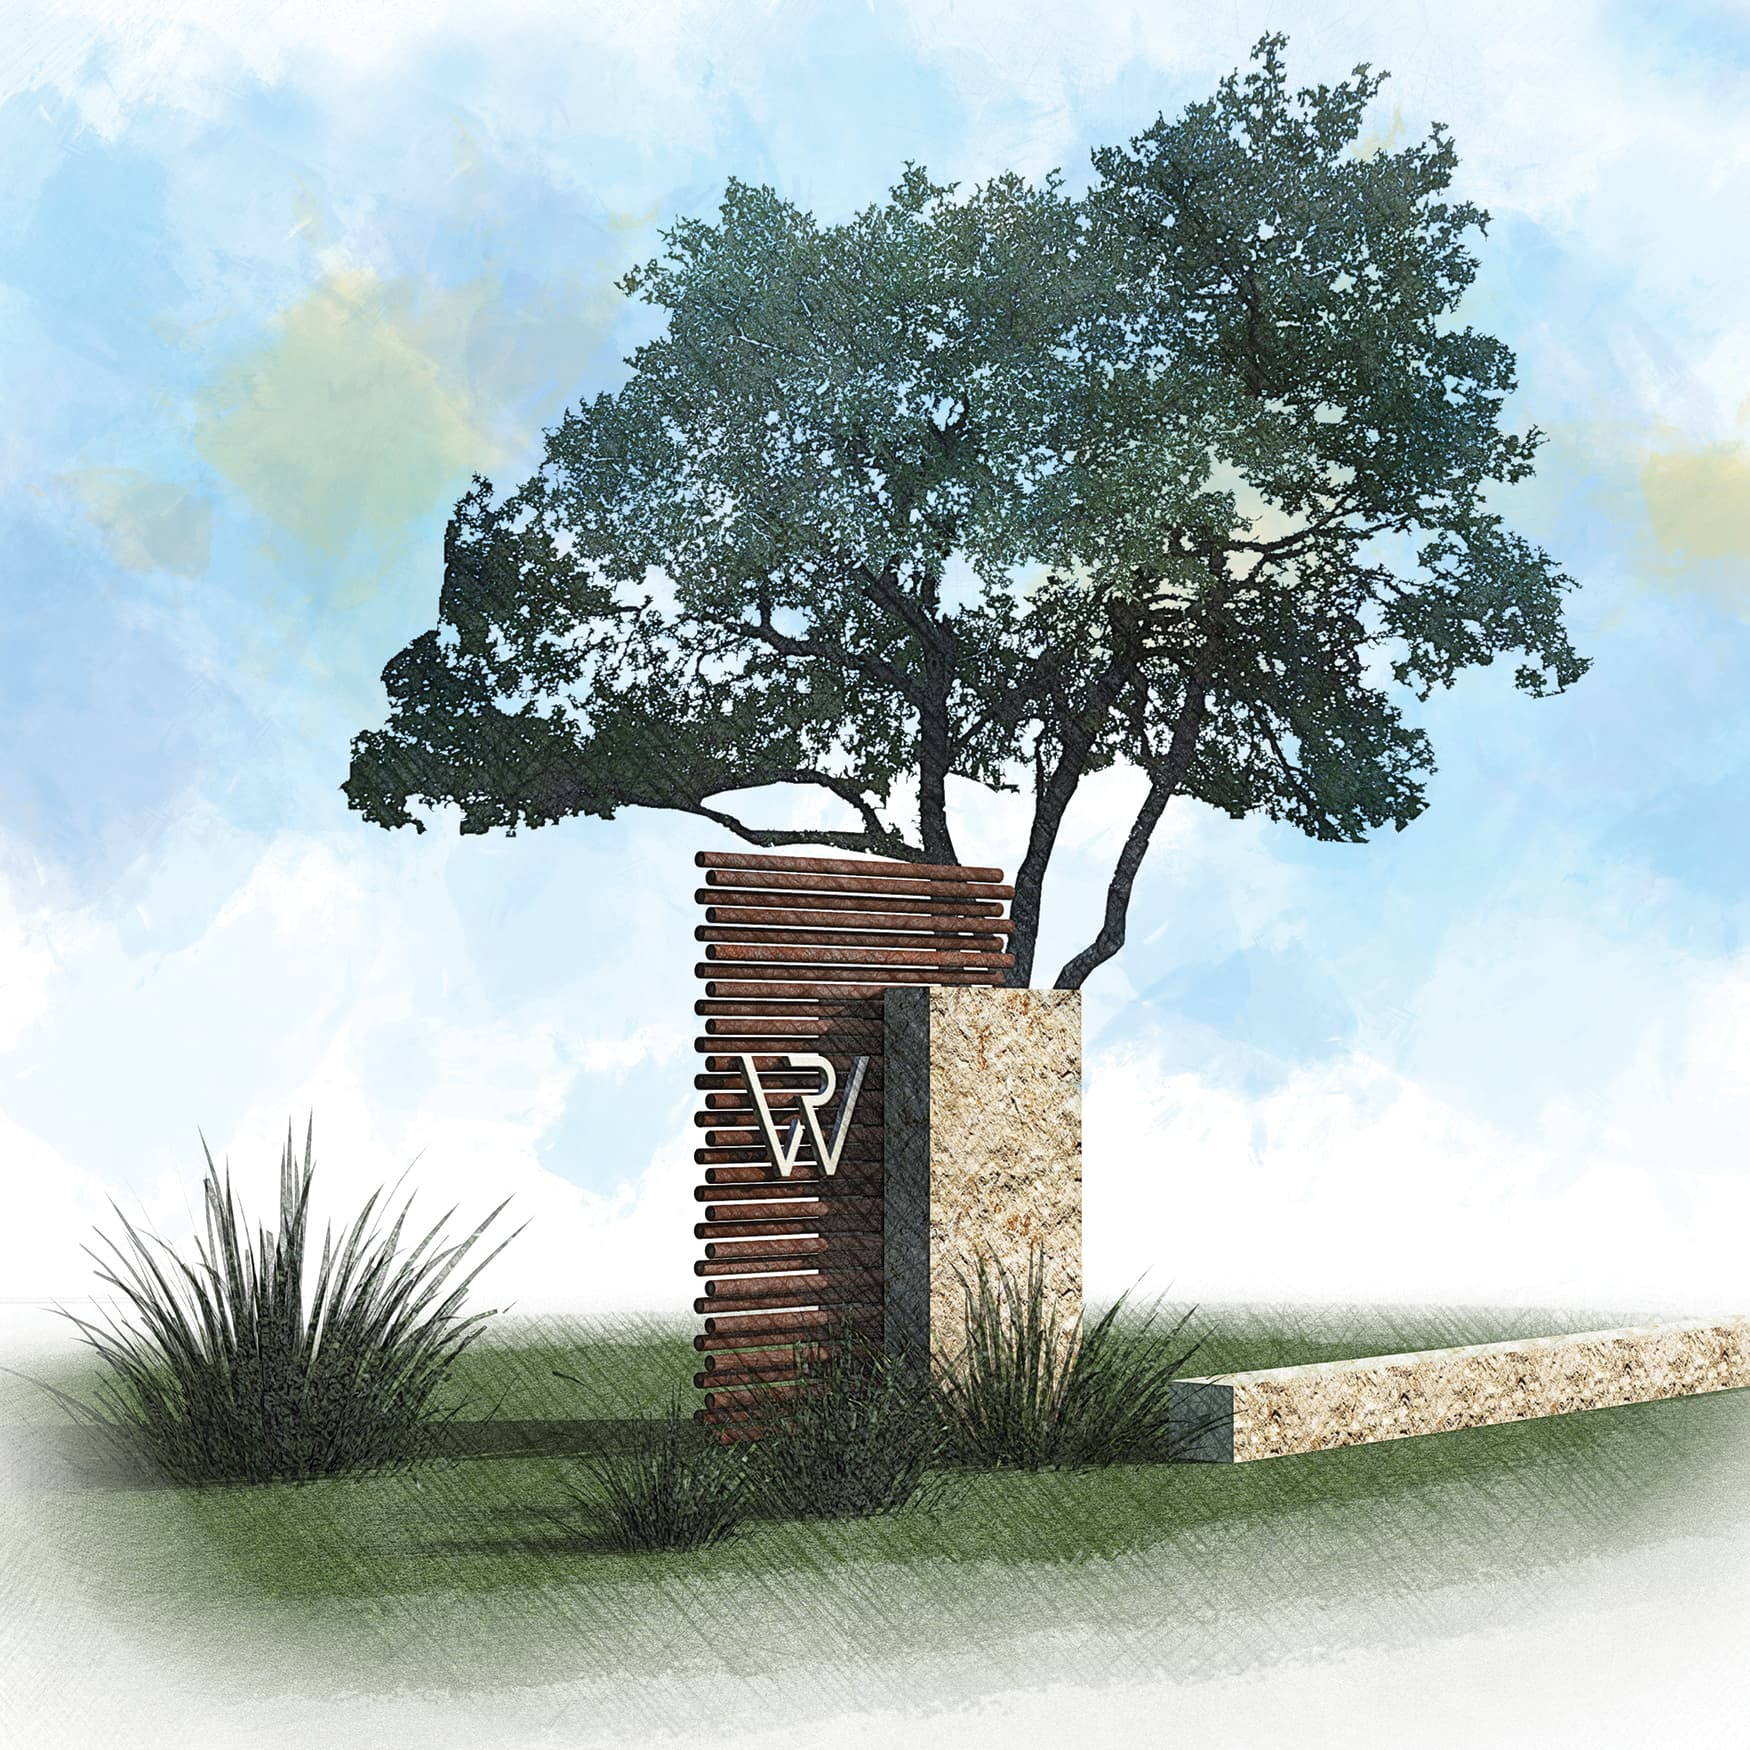 Wolf Creek Monument Signage Using Corten and Texas Limestone